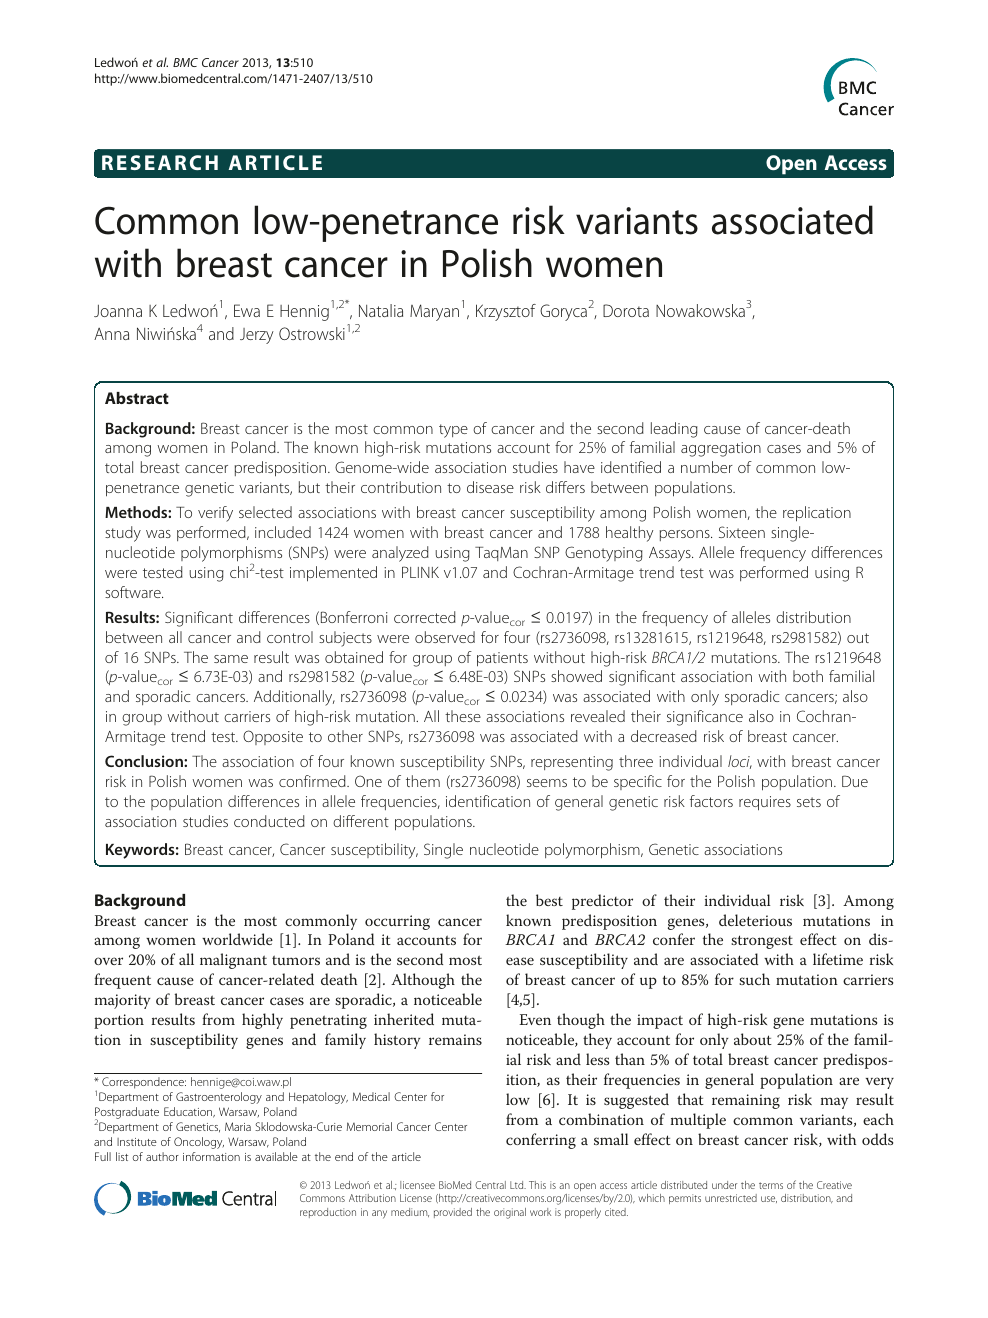 Common low-penetrance risk variants associated with breast cancer in